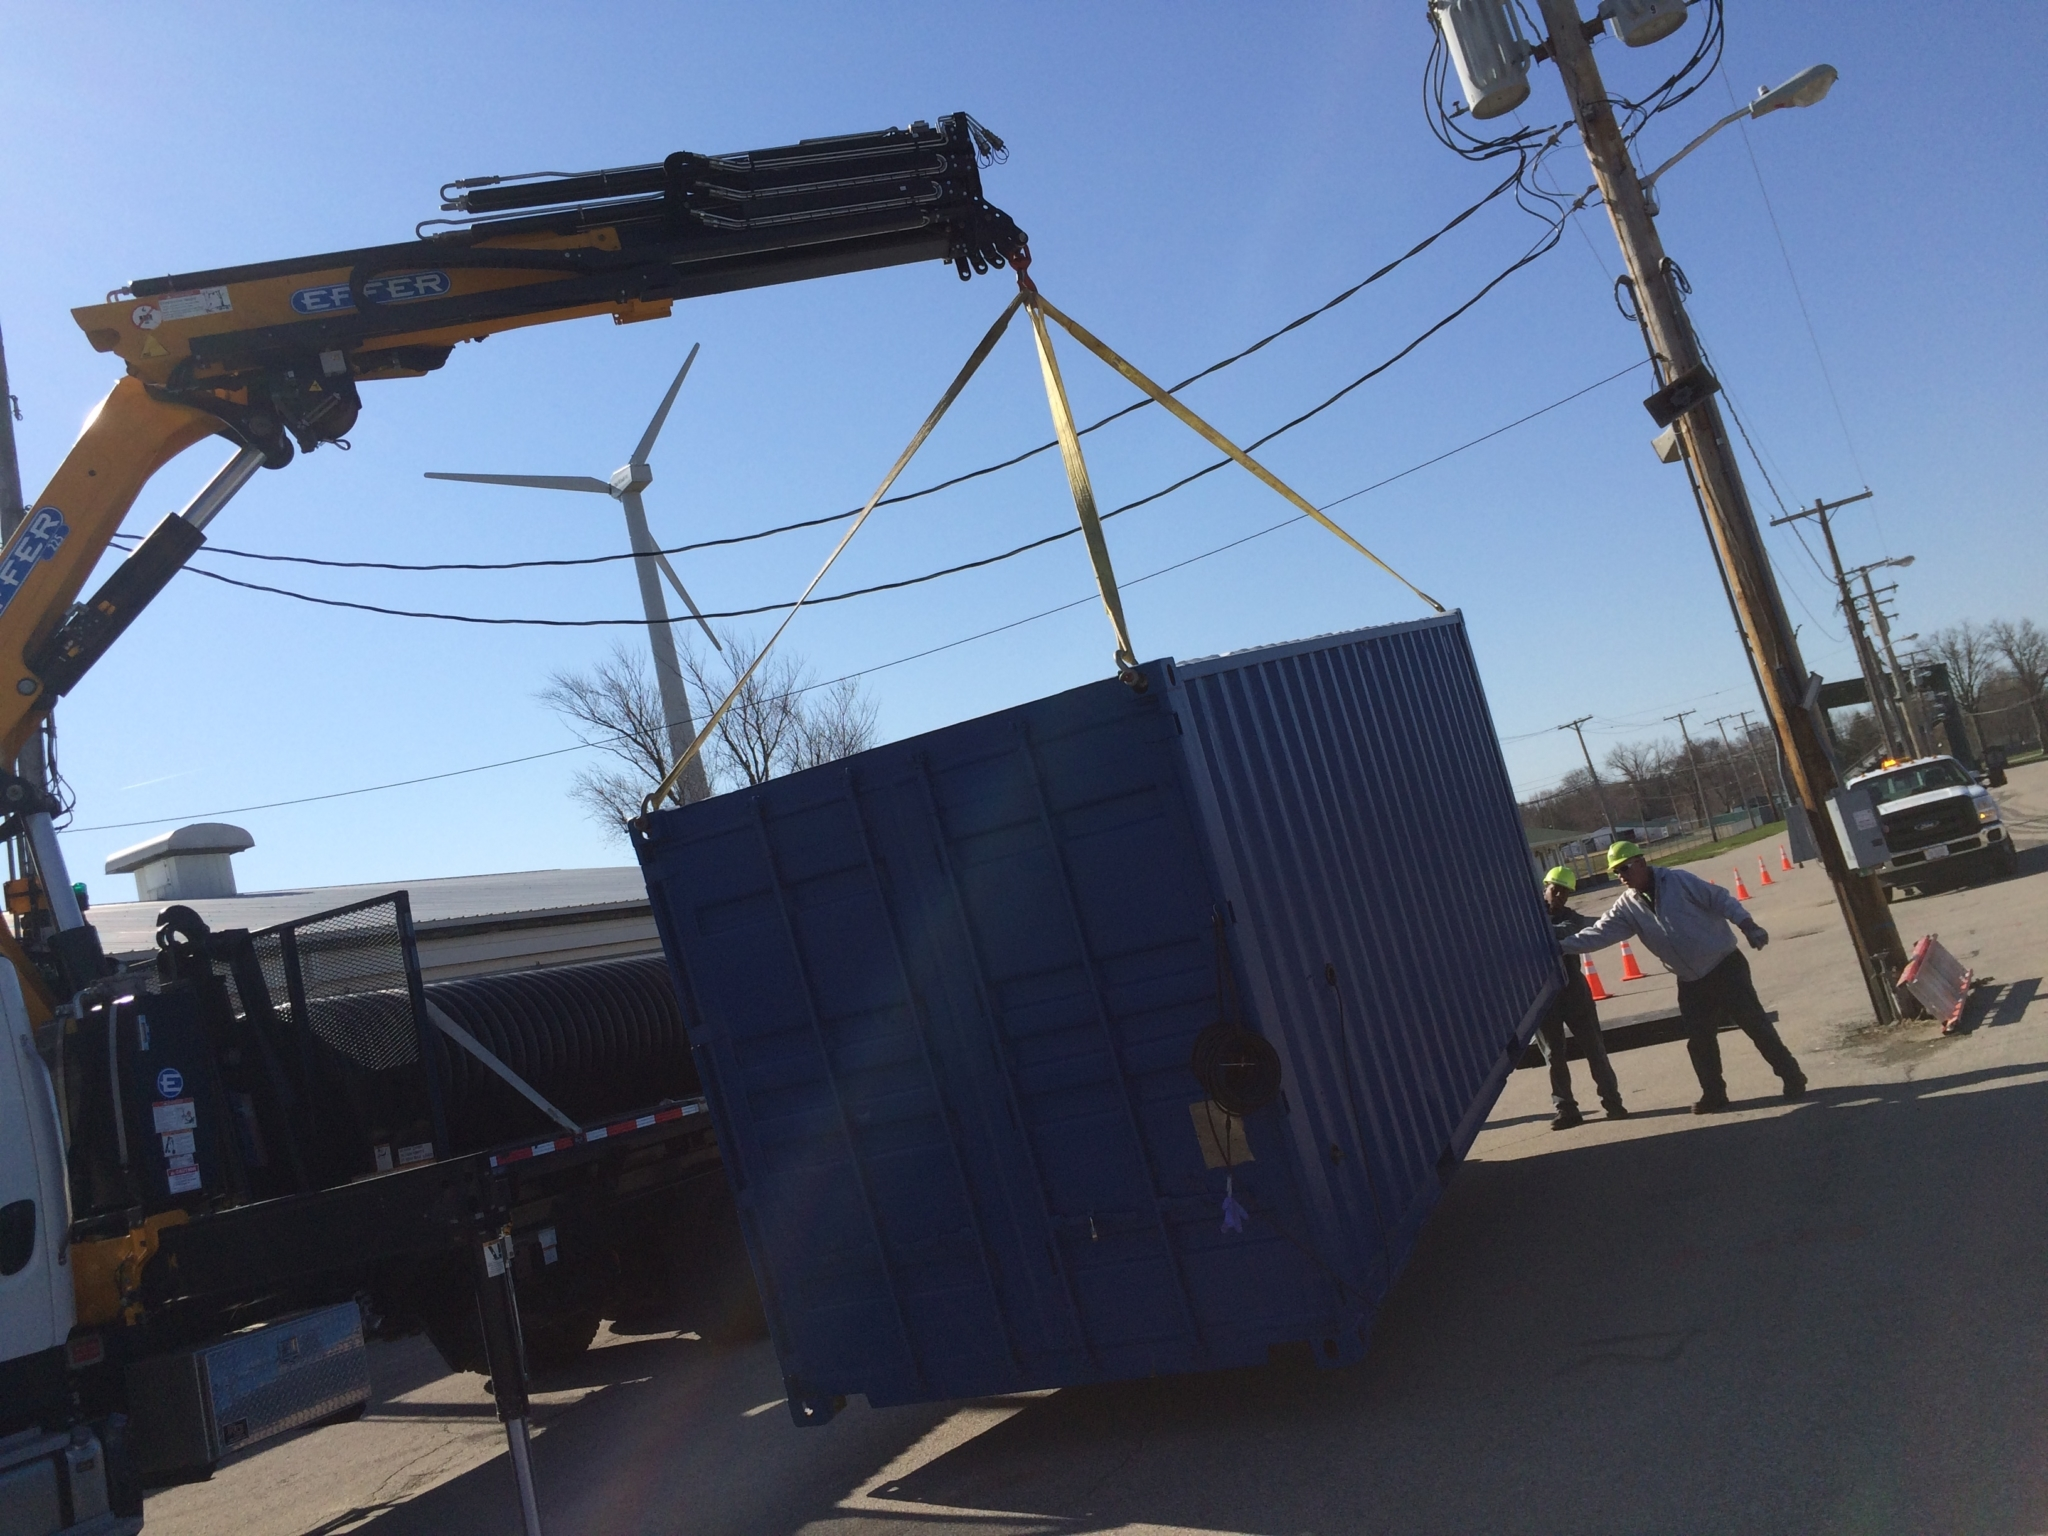 Currently, the simulator has to be placed onto a trailer with a crane to transport it. One of the improvements being worked on this year is a way to more easily transport it. (Photo courtesy of NEORSD)